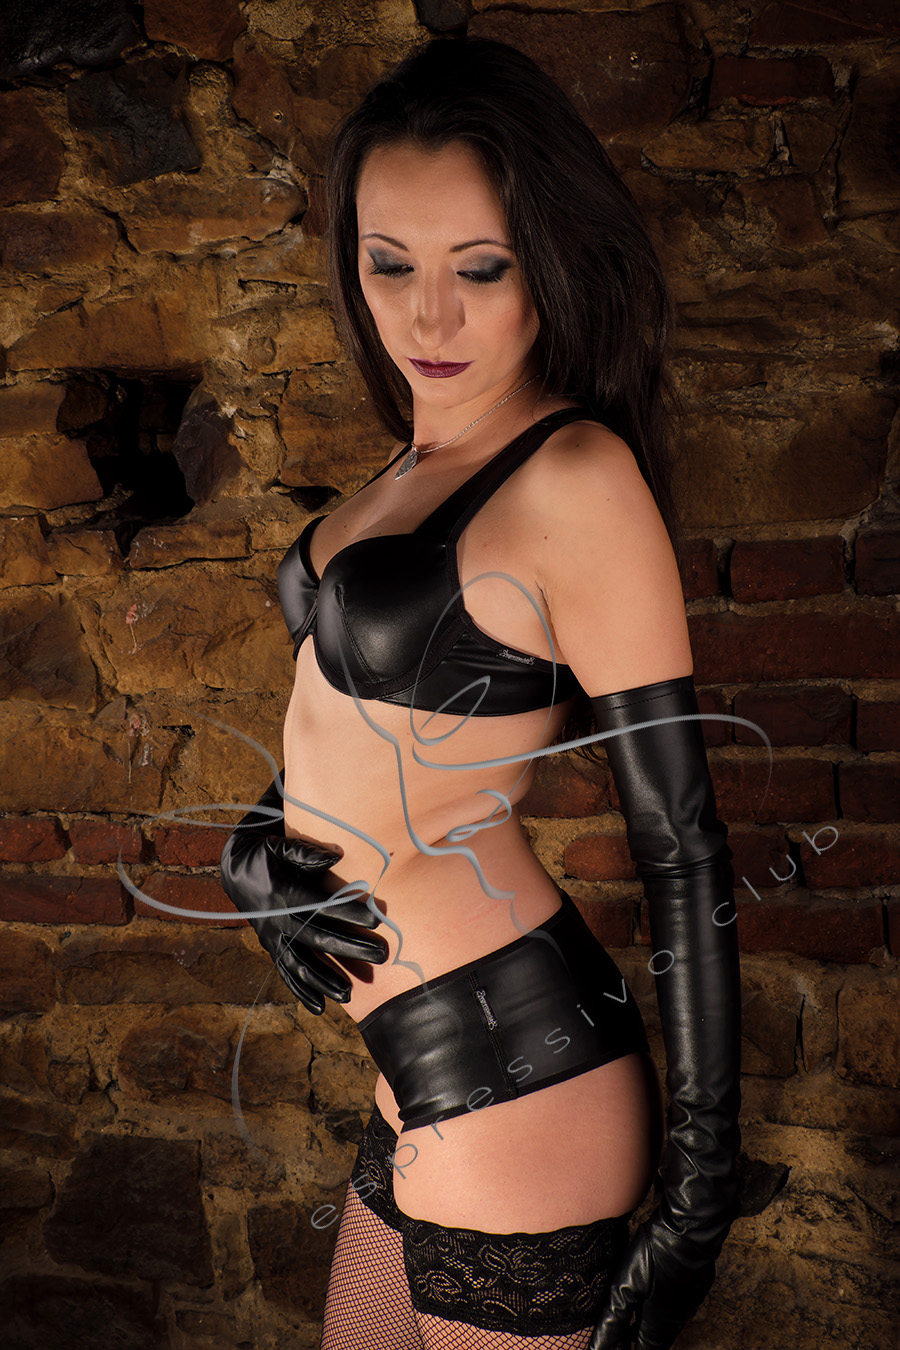 Domina sex toys first time lingerie